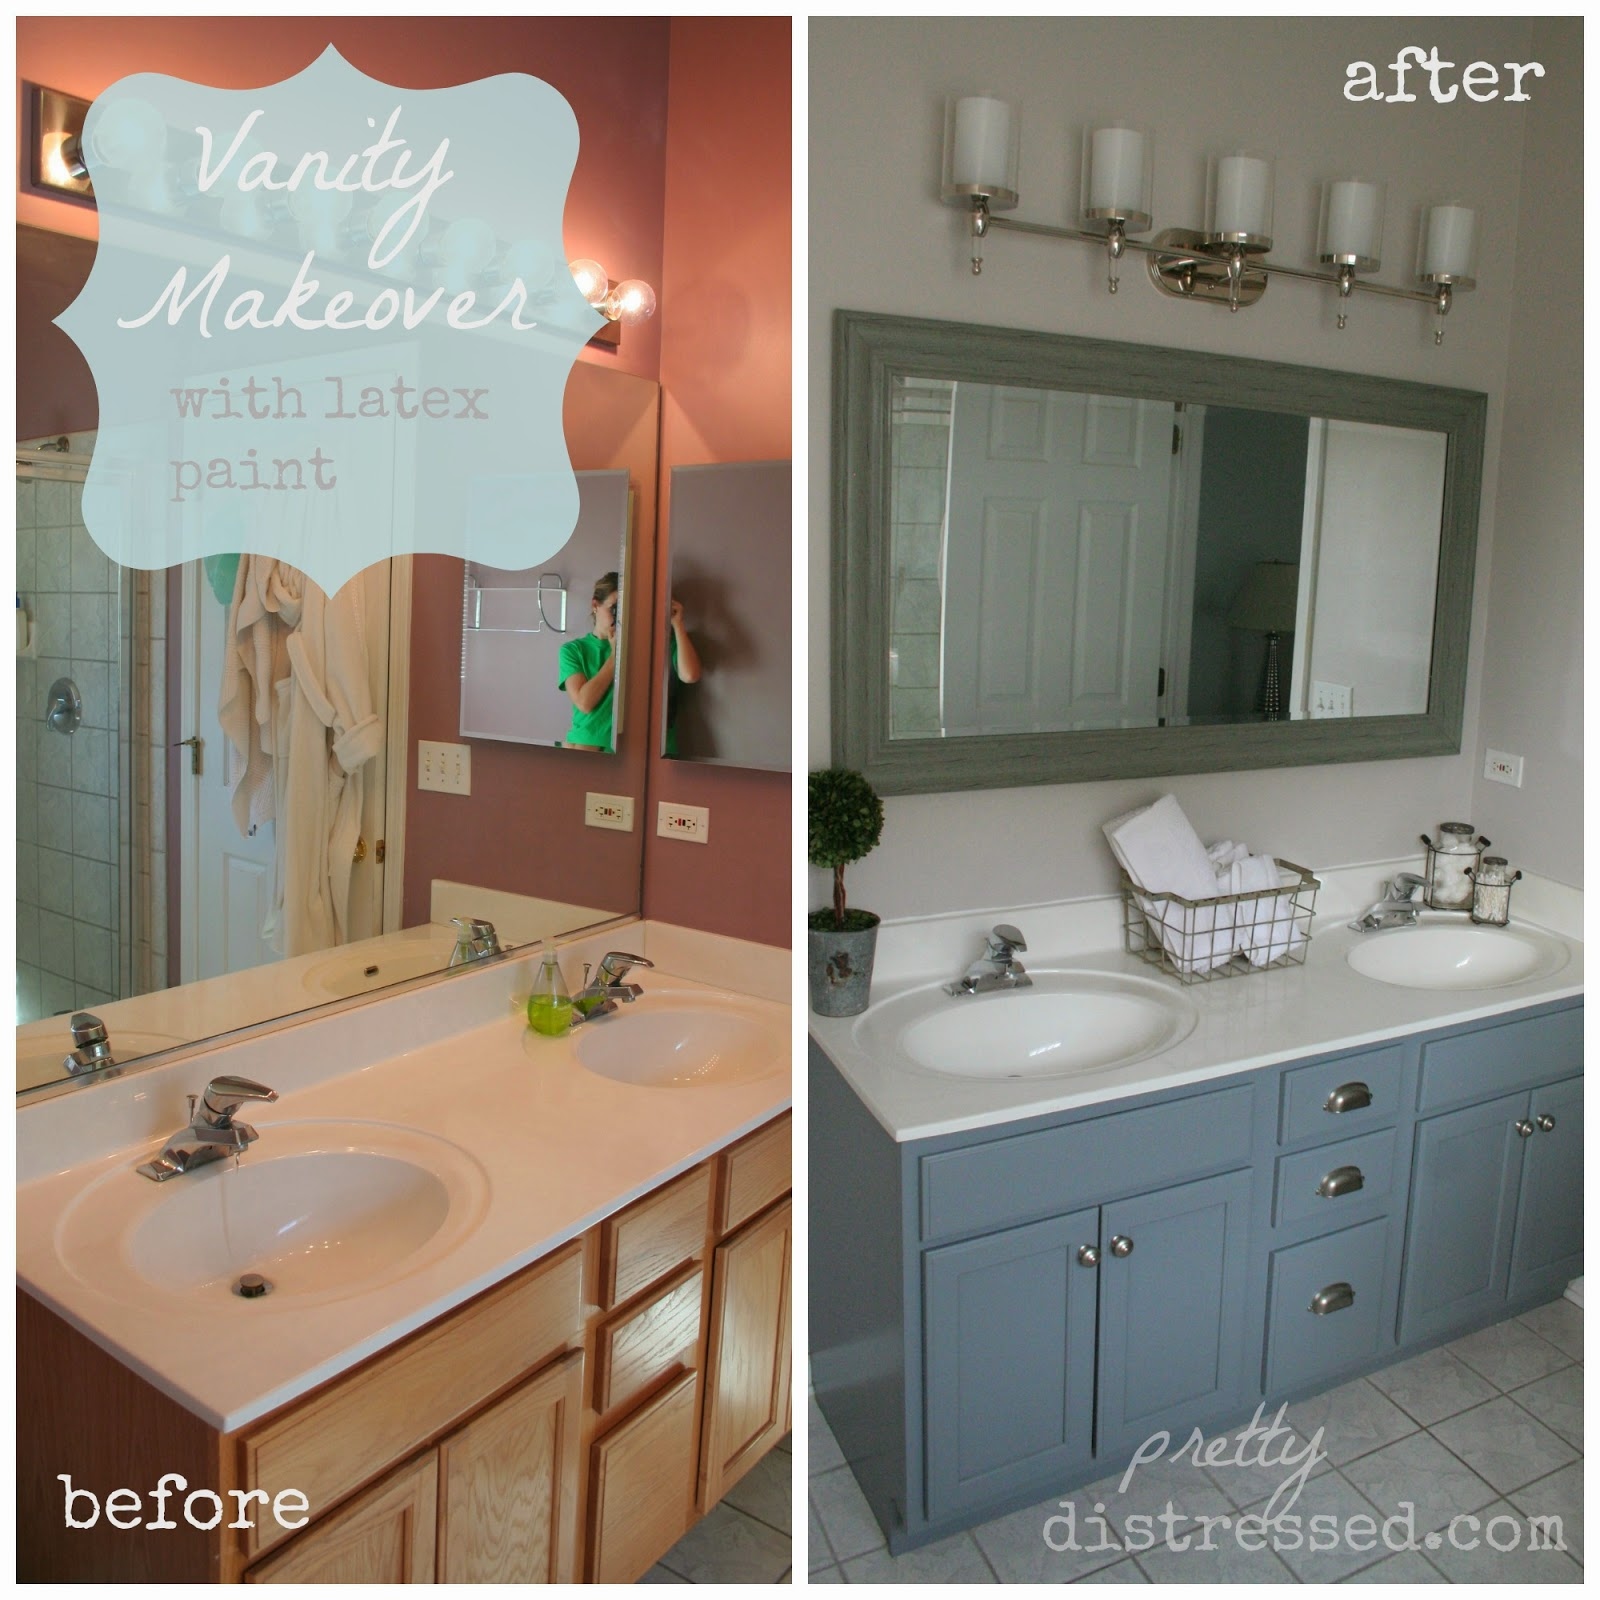 Pretty distressed happy 1st birthday for Bathroom designs paint